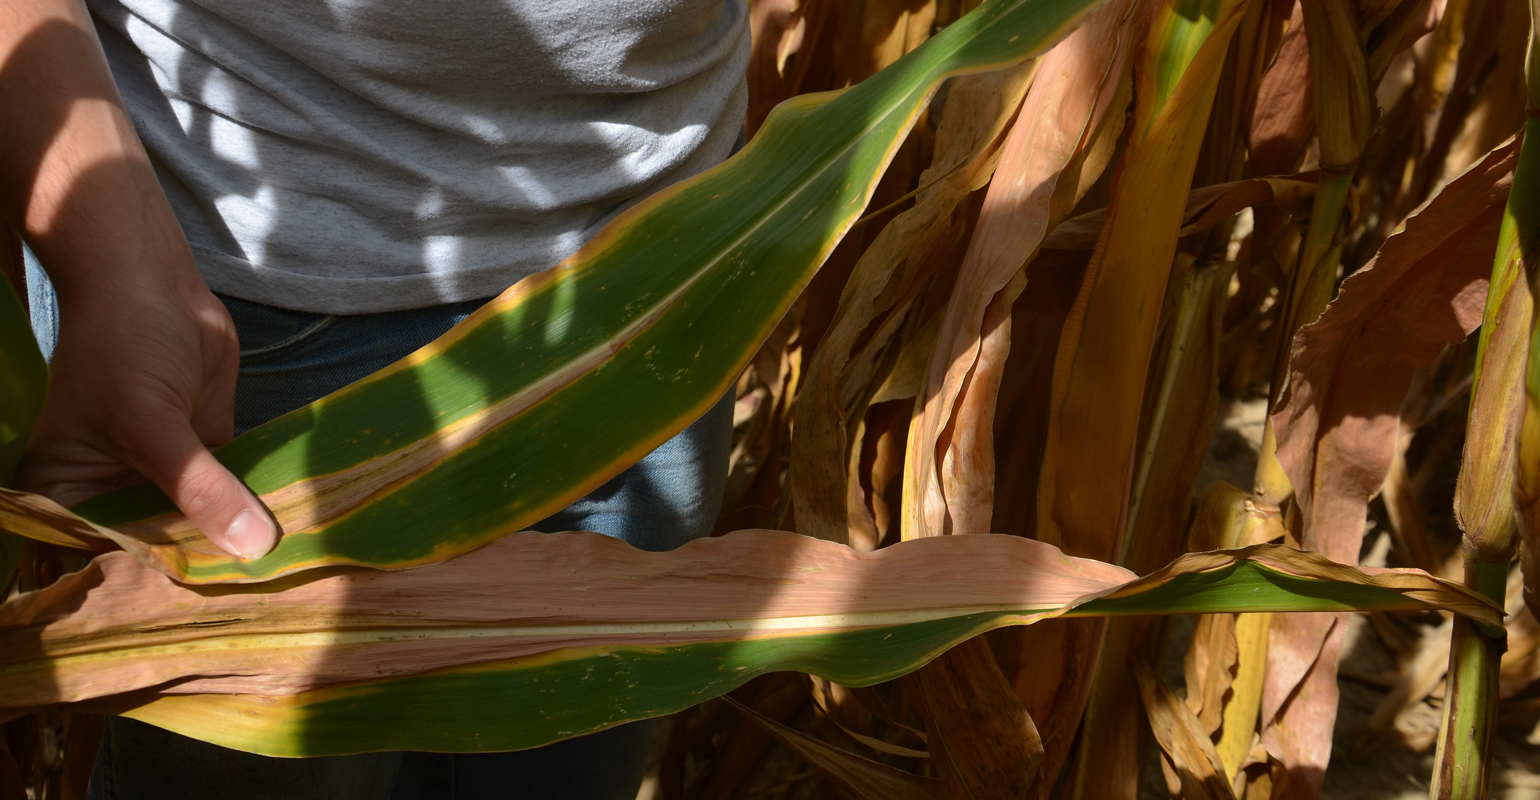 corn leaves showing signs of potassium and nitrogen deficiencies